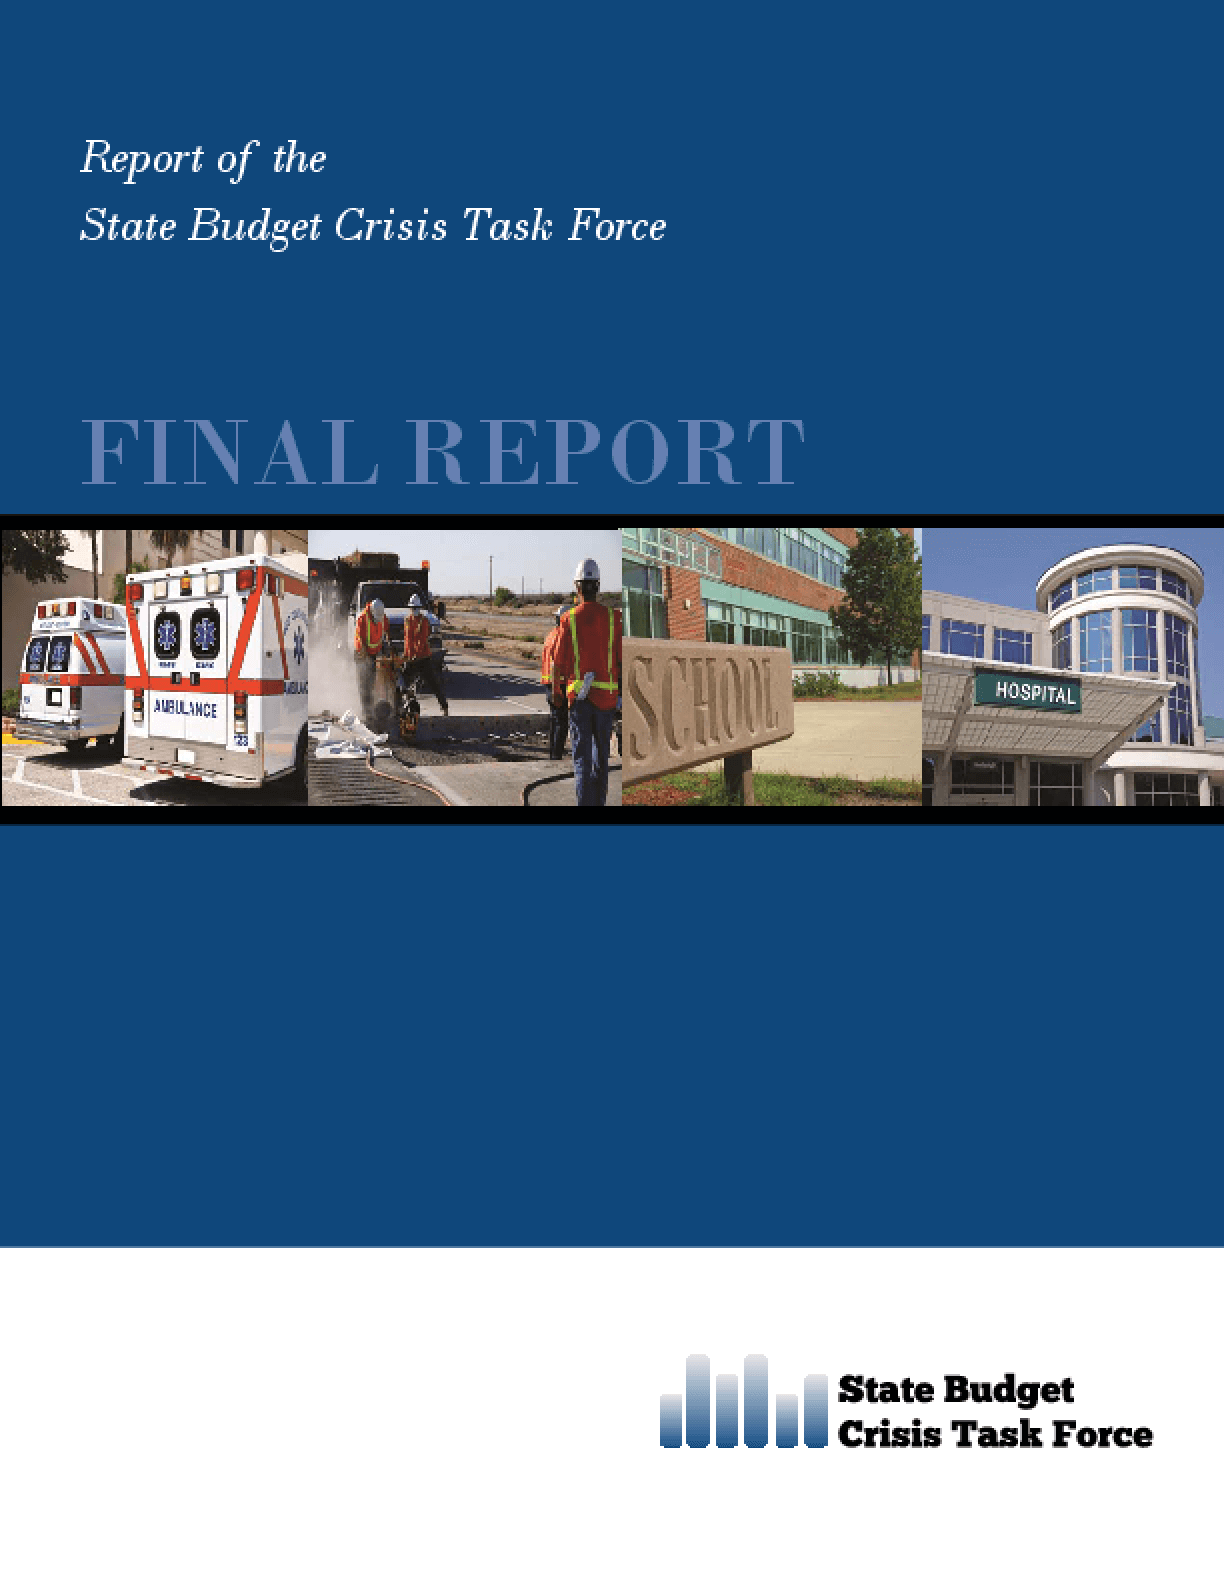 Report of the State Budget Crisis Task Force: Final Report